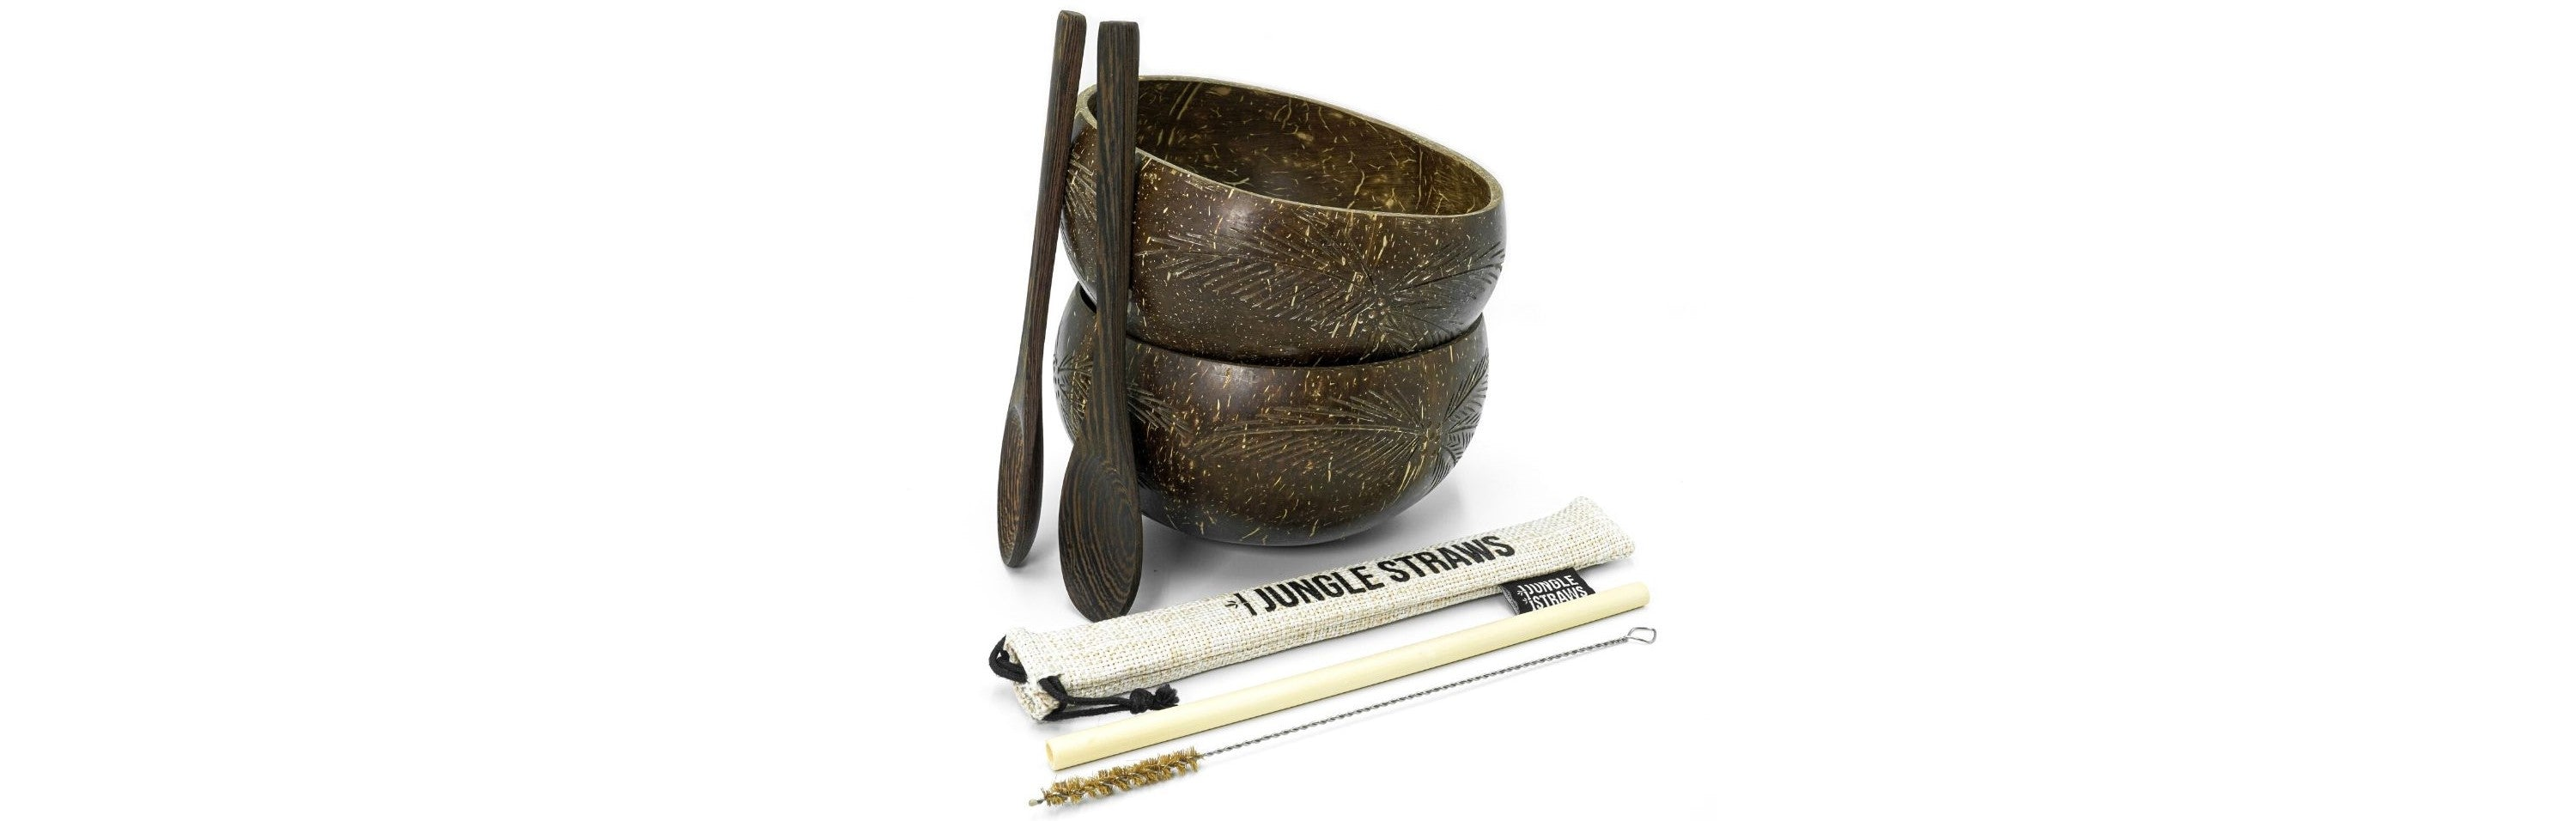 The coconut bowl double set - with two coconut bowls, two reclaimed spoons and one bamboo straw in a natural jute carry bag and a coconut cleaning brush for your straws.